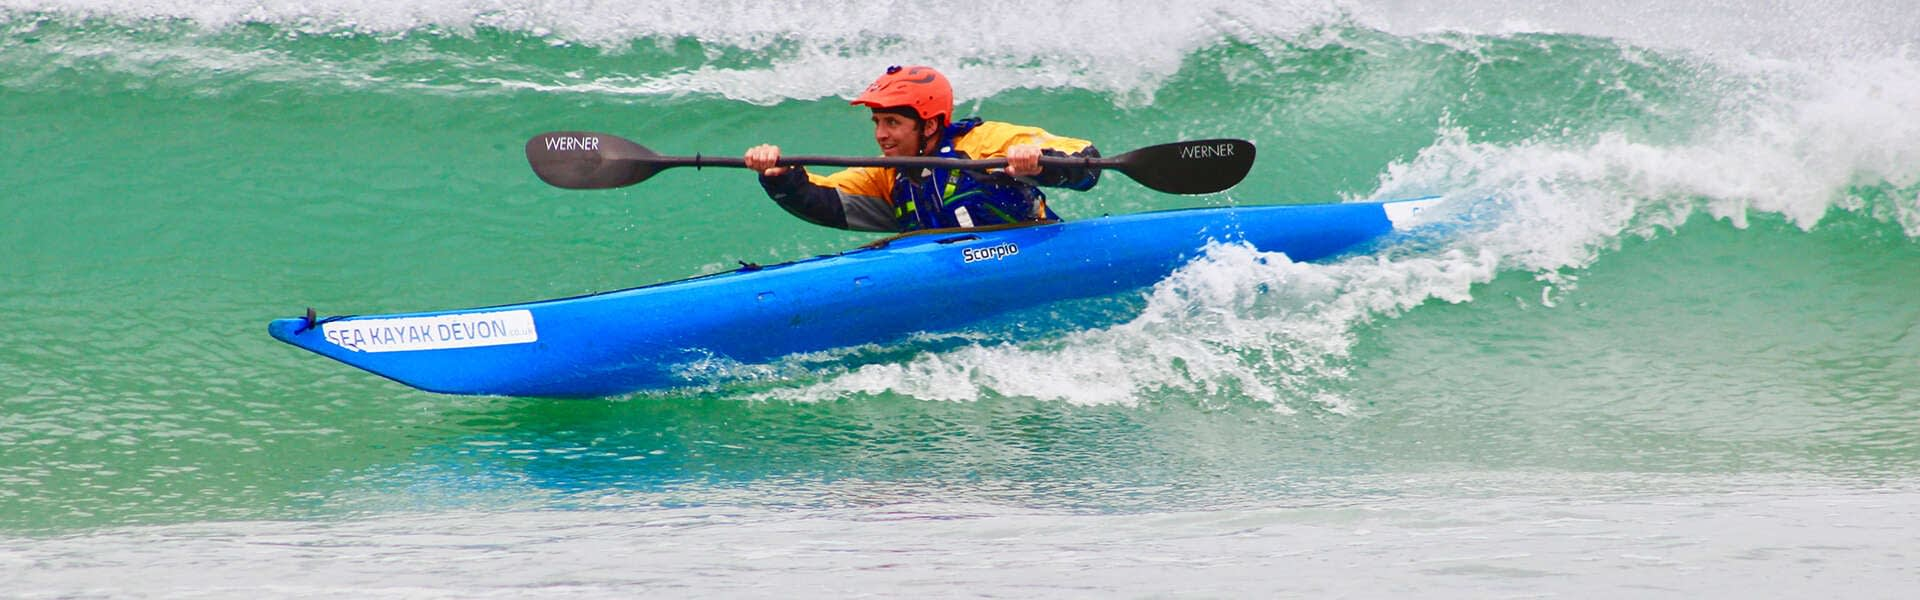 Kayaking For Non-Swimmers - Here's How To Do It